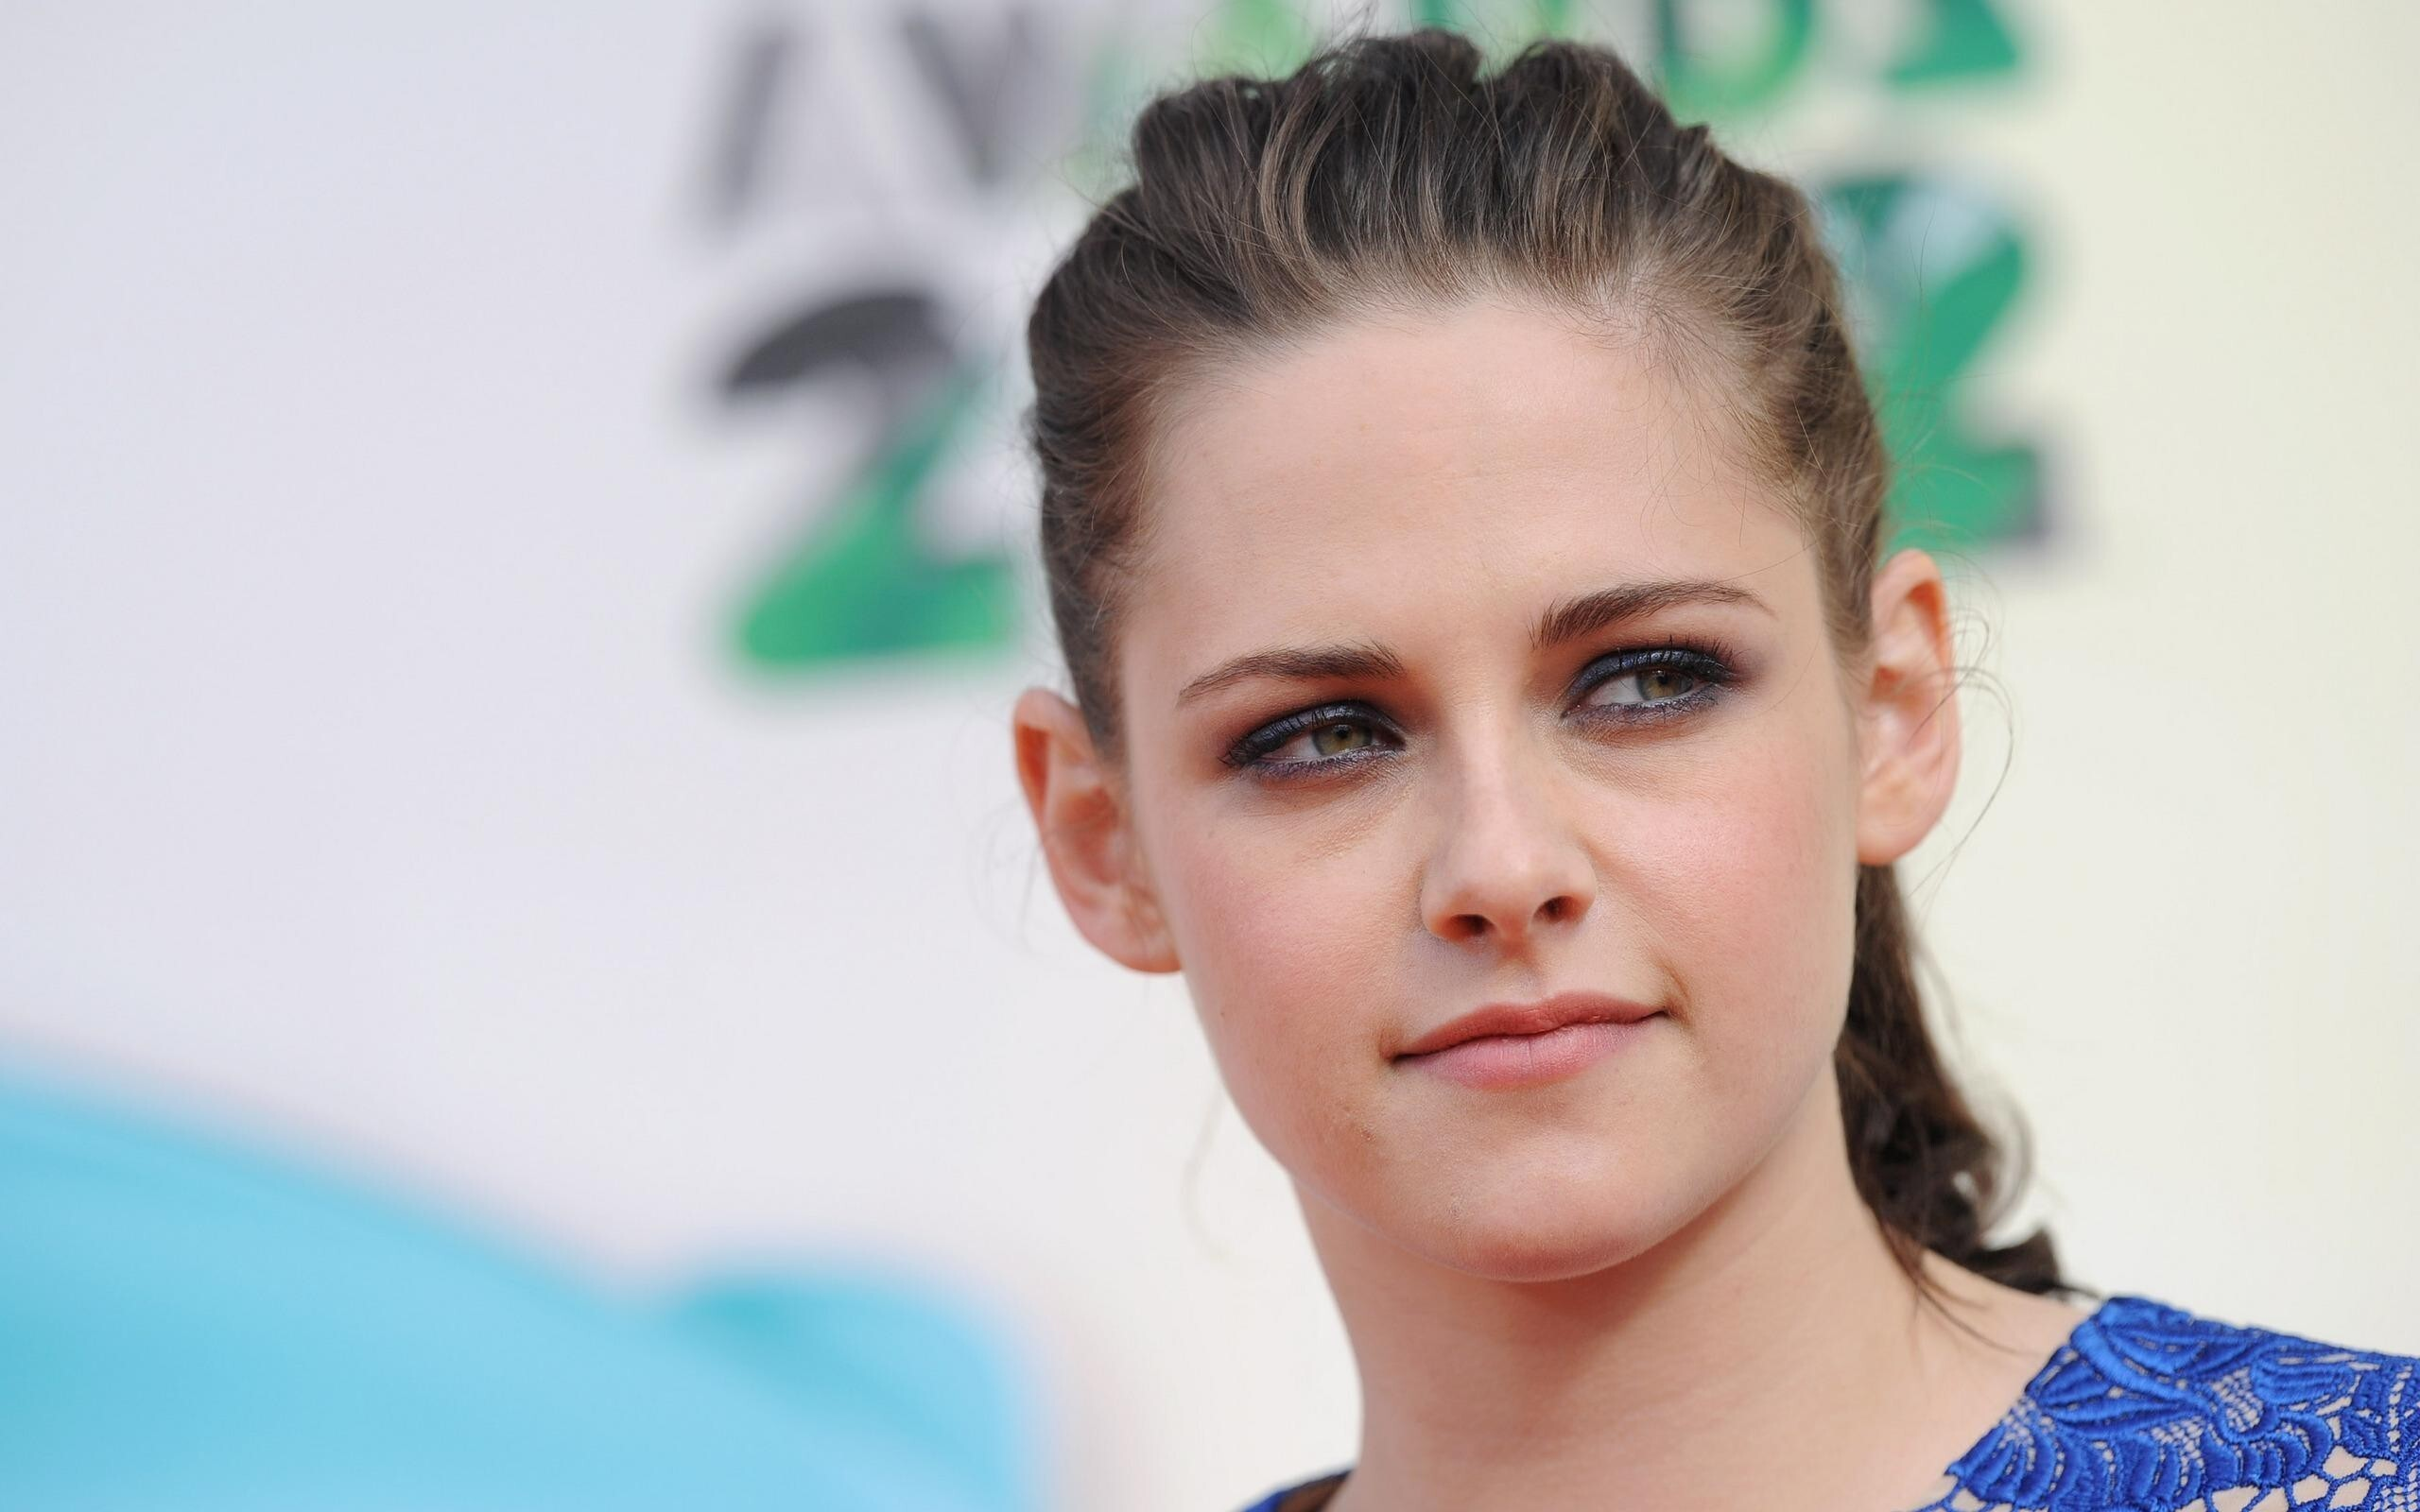 Beautiful american celebrity kristen stewart cute eye hd wallpaper beautiful american celebrity kristen stewart cute eye hd wallpaper hd wallpapers voltagebd Image collections